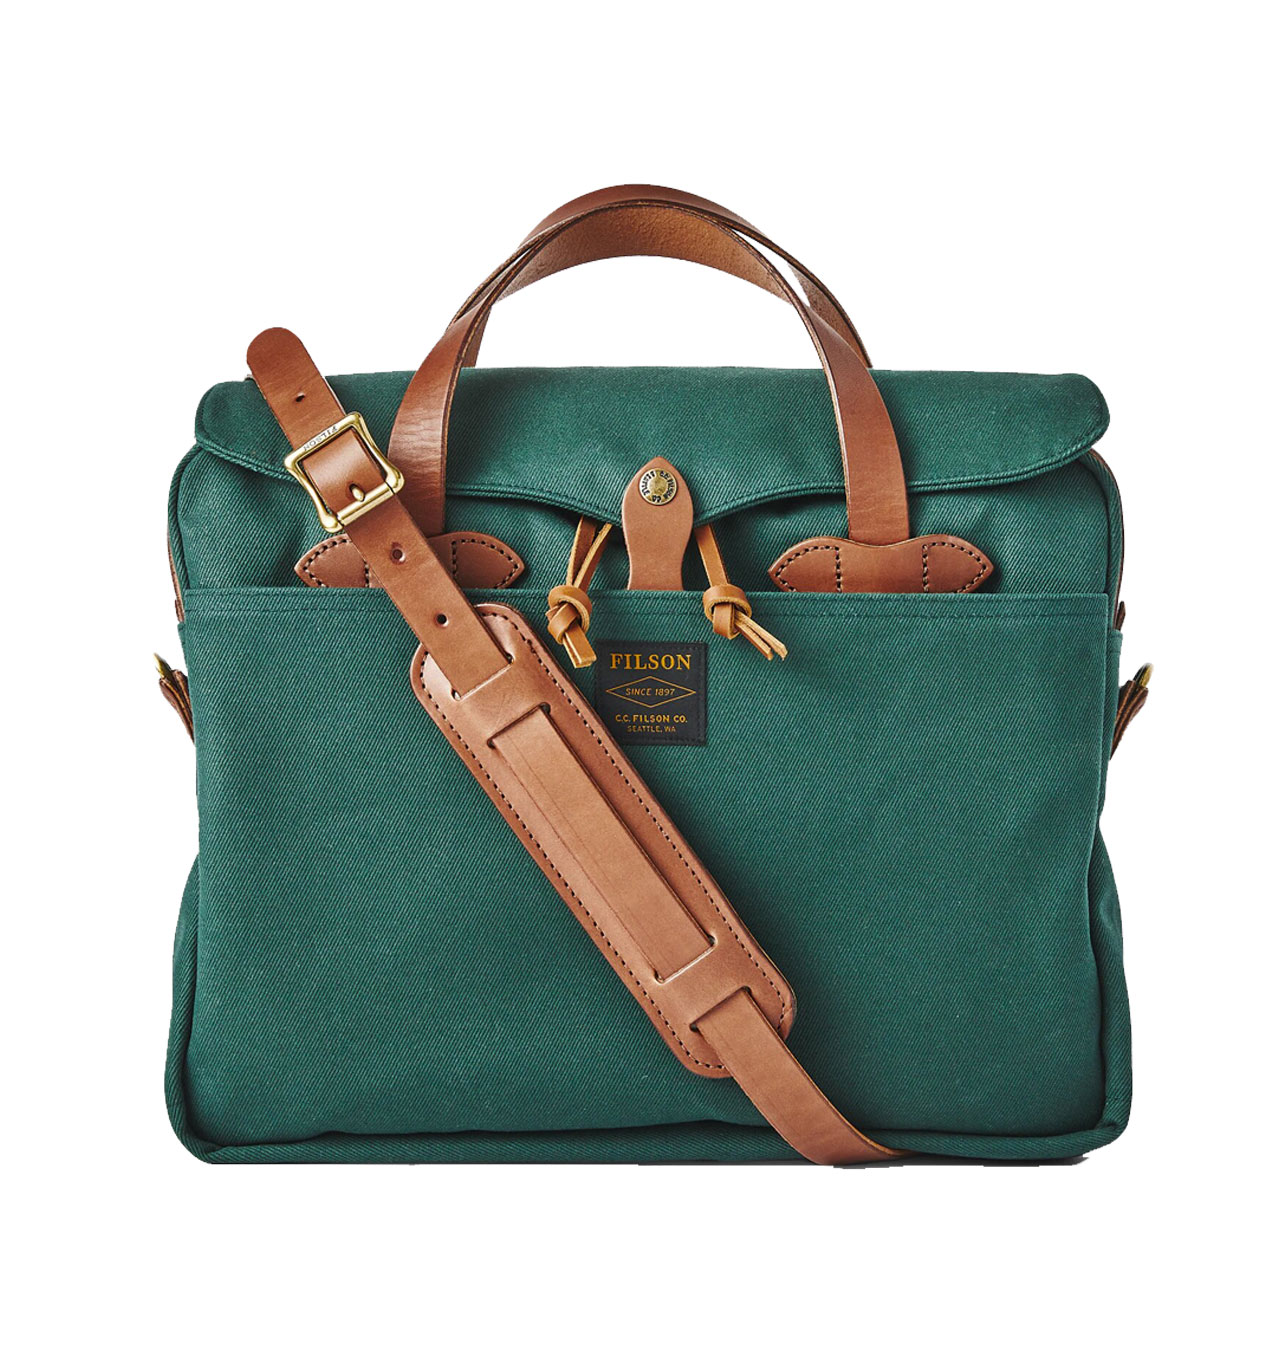 Filson---Original-Briefcase---hem-12